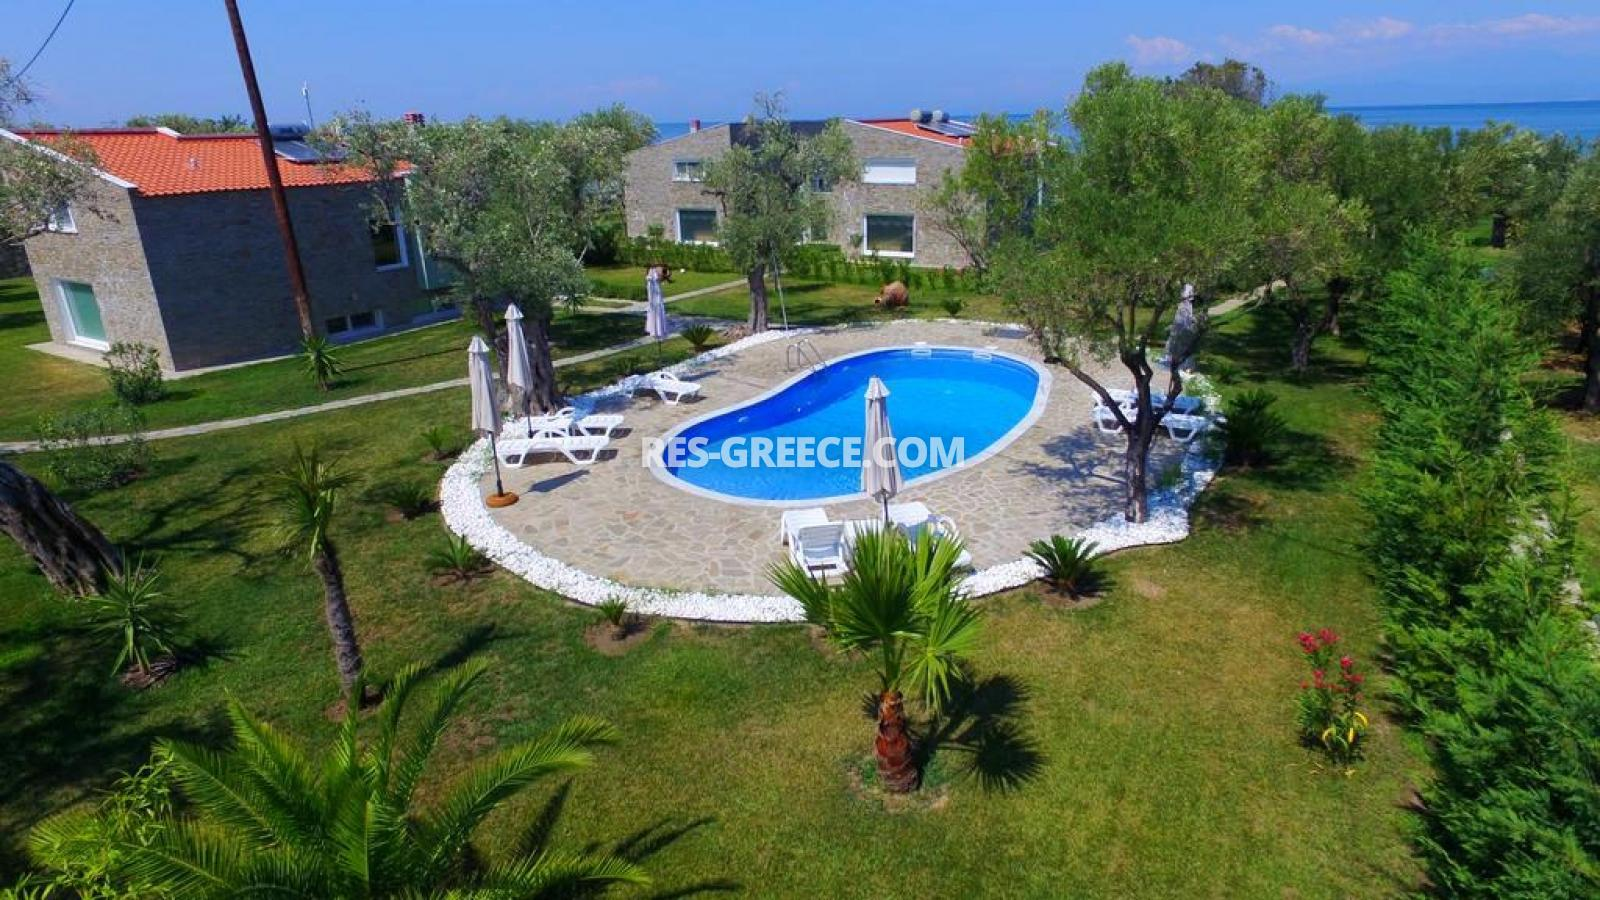 Arhondula Villa 3, Northern Aegean Islands, Greece - ready beachfront complex for rent on Thassos island with EOT licences - Photo 23